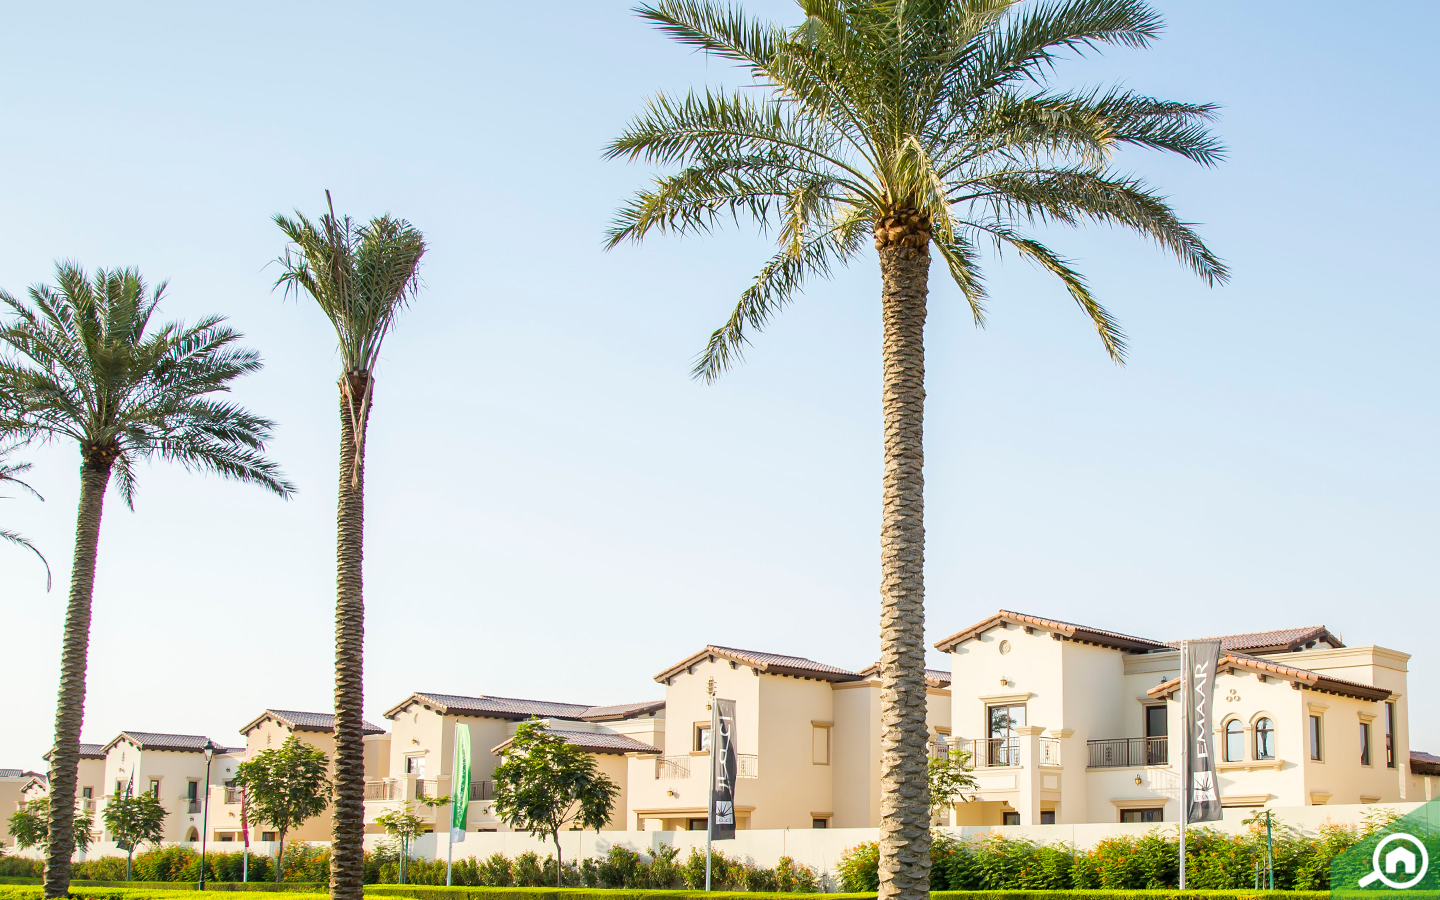 Villas in Arabian Ranches are built to very high standards